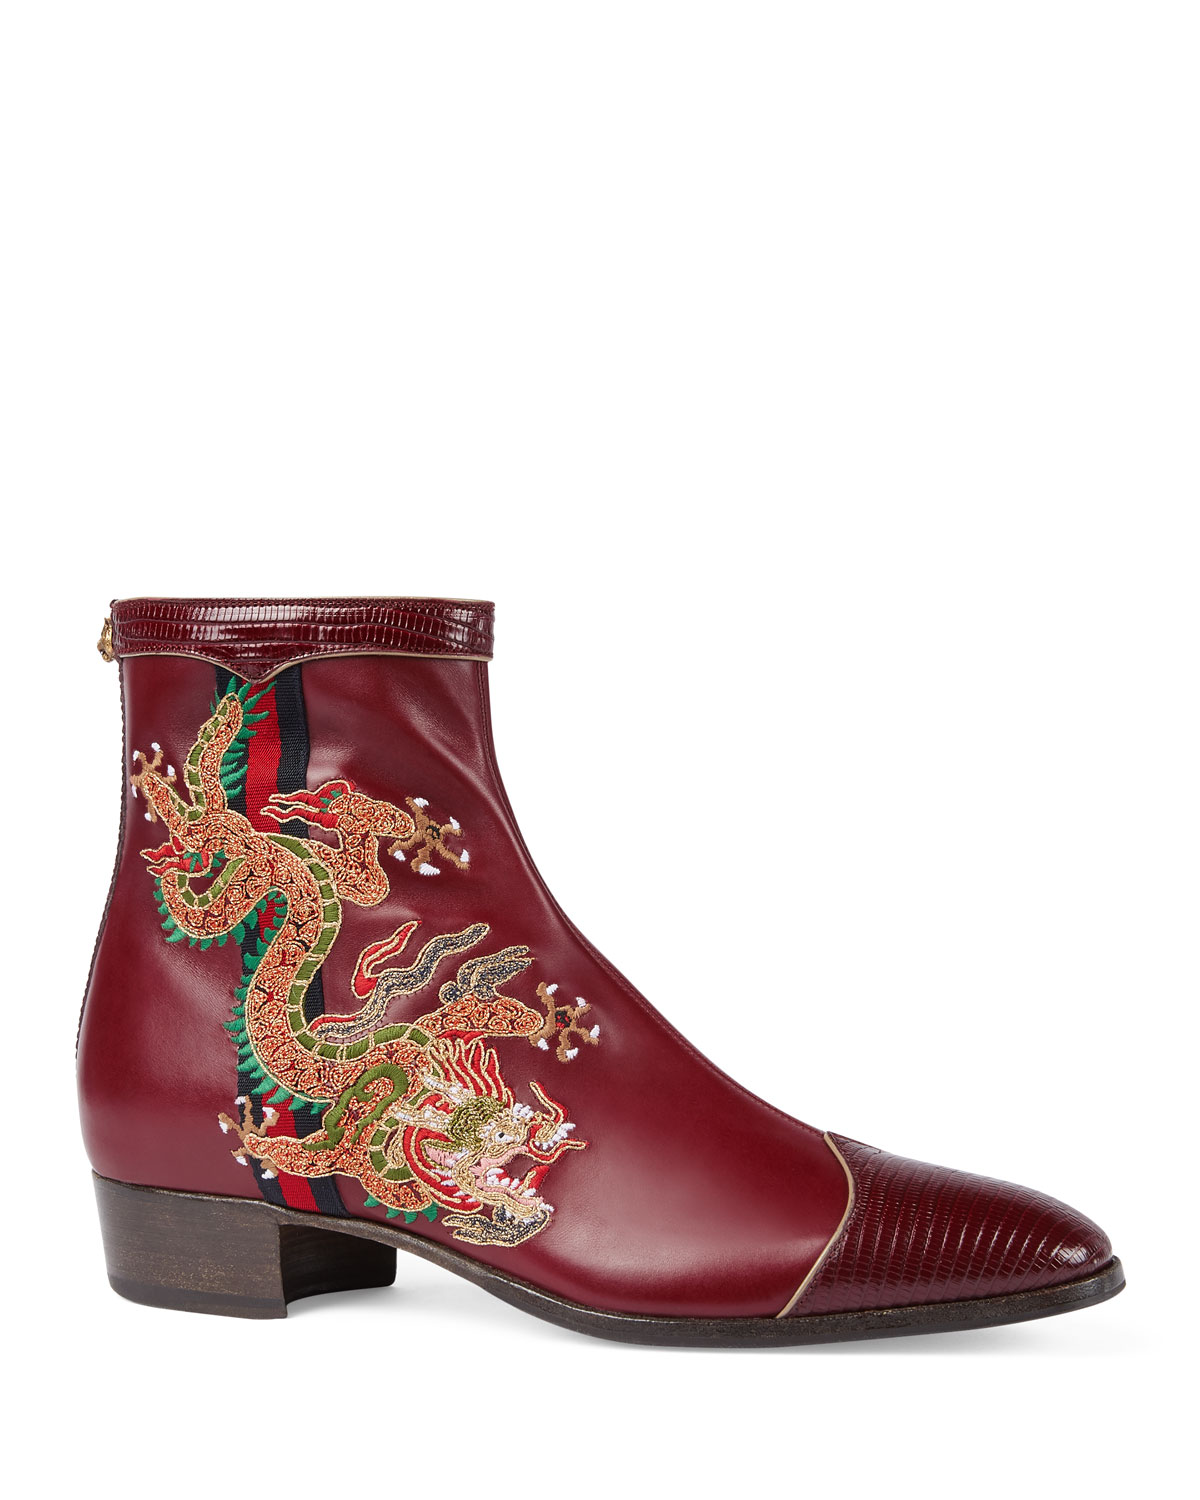 9b846c7de Gucci Leather Boot with Dragon | Neiman Marcus